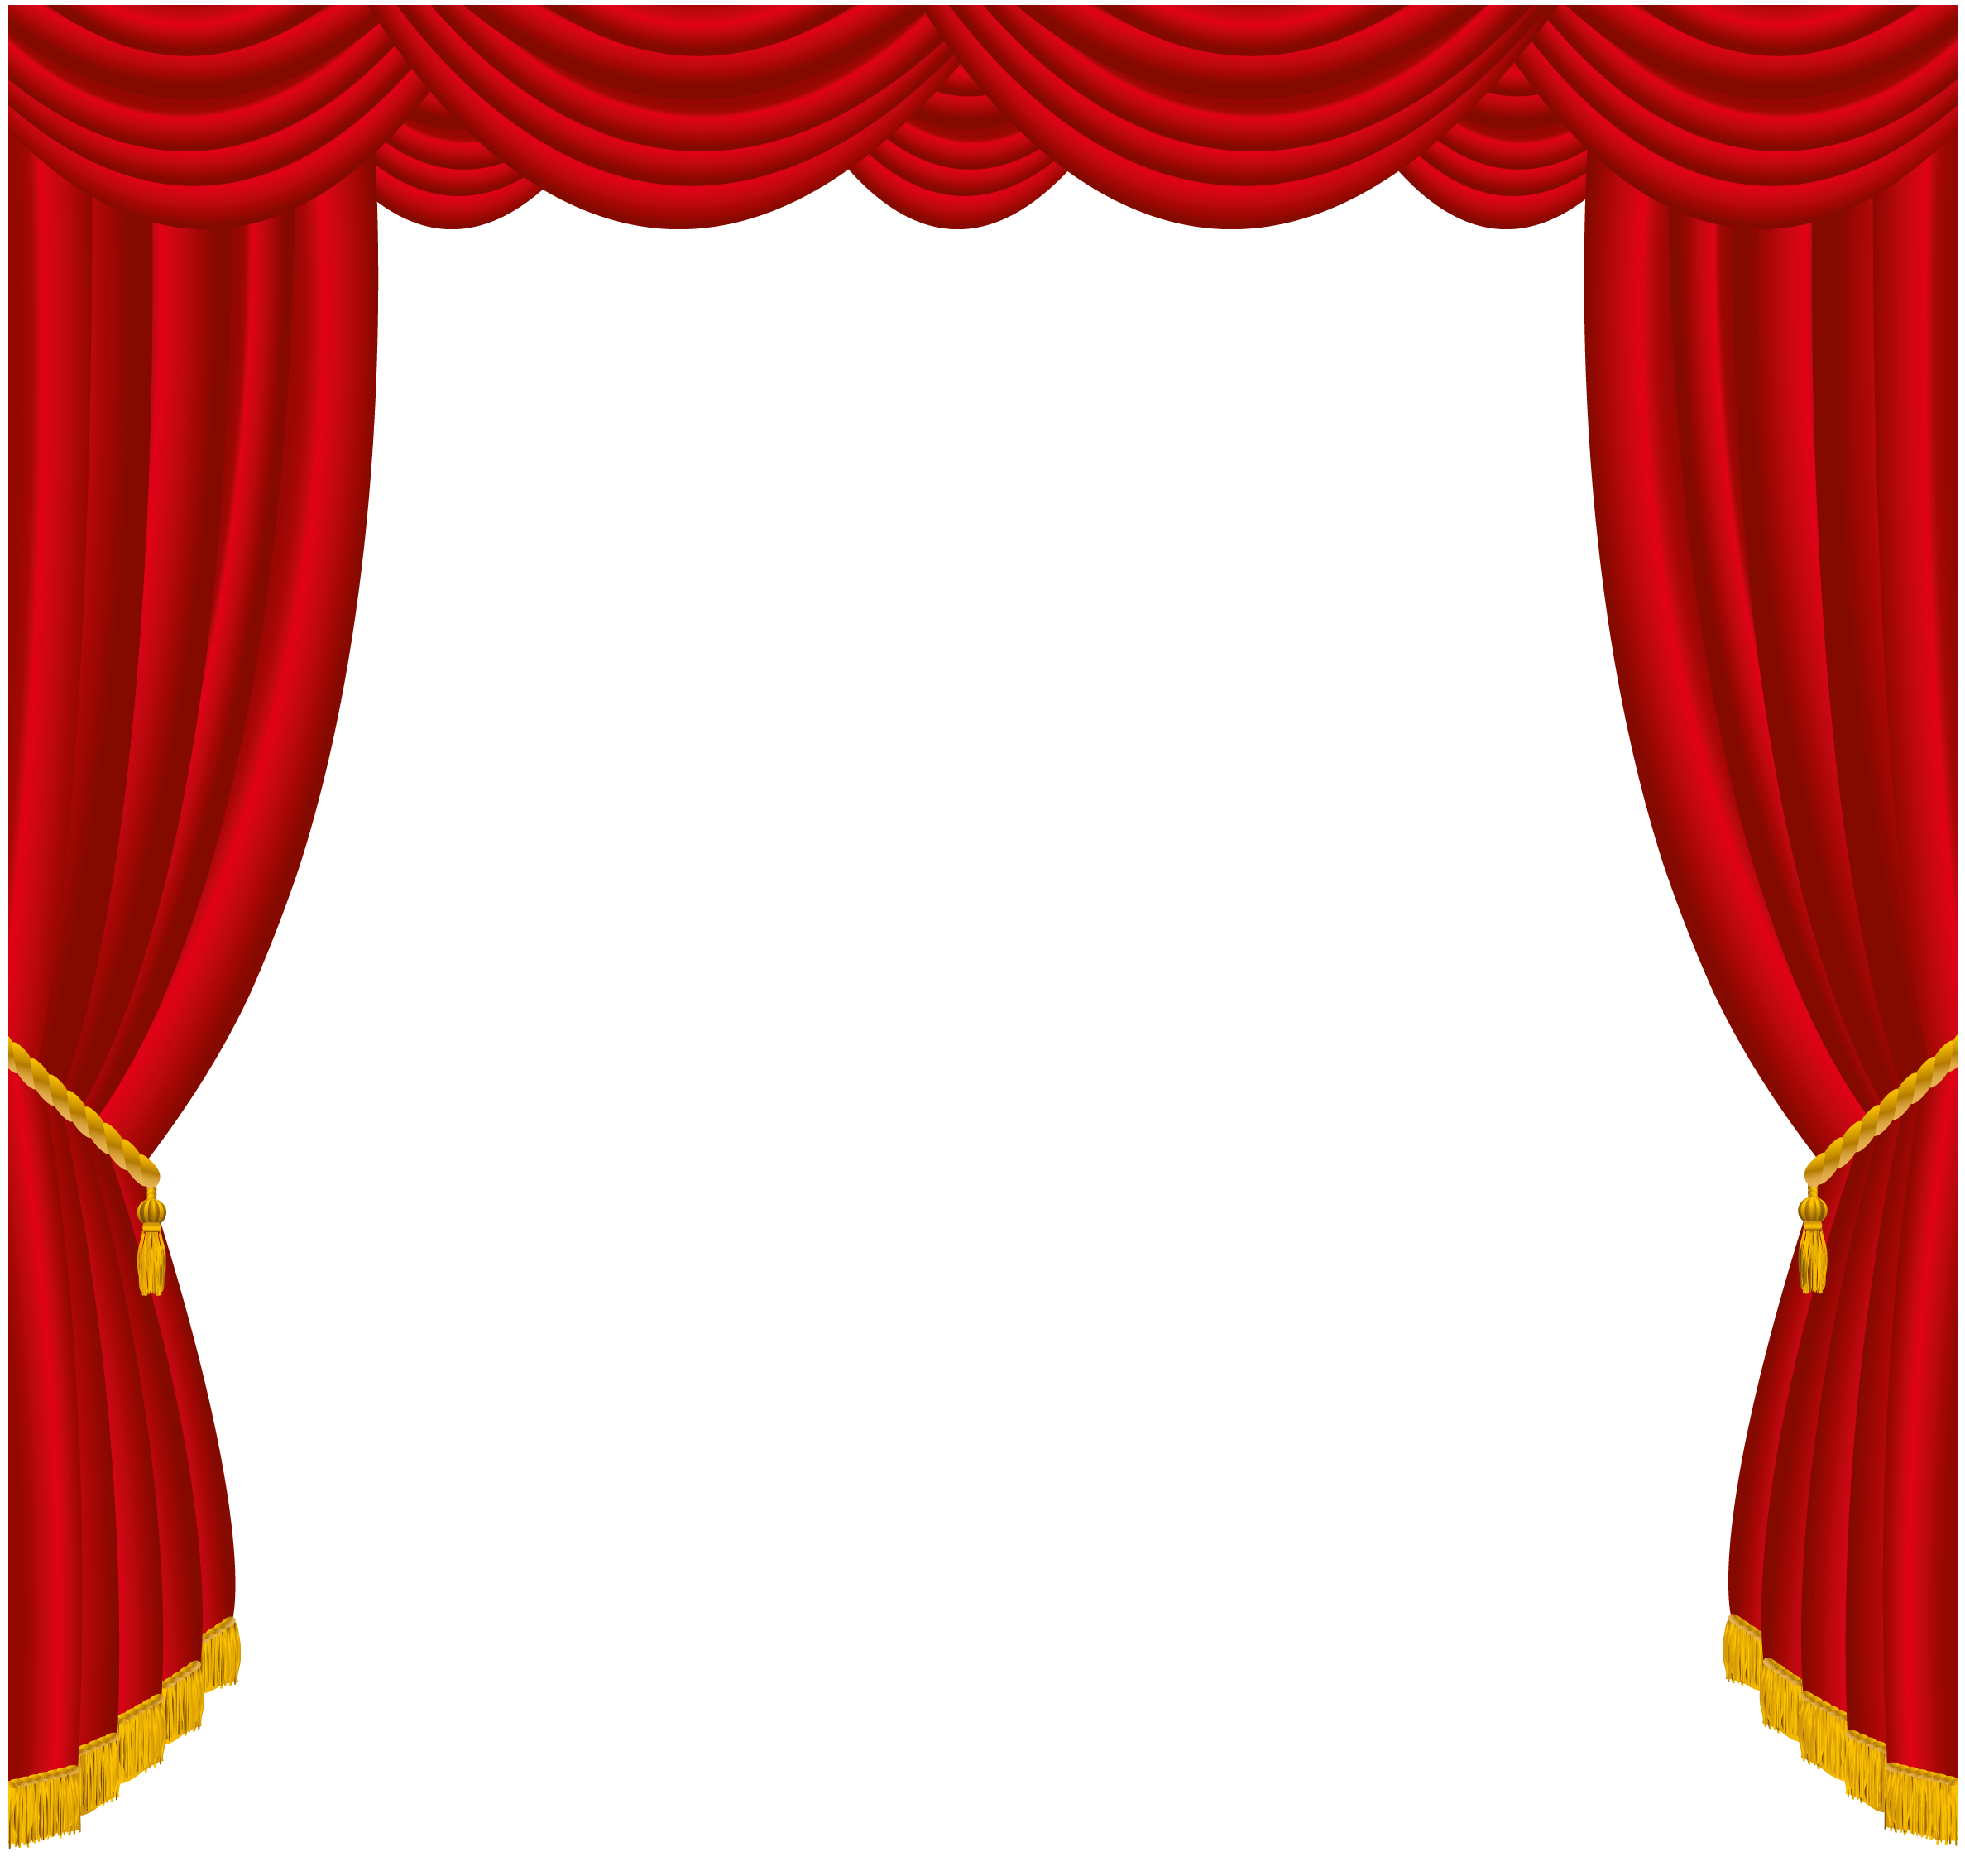 Transparent red curtains decor. Curtain clipart